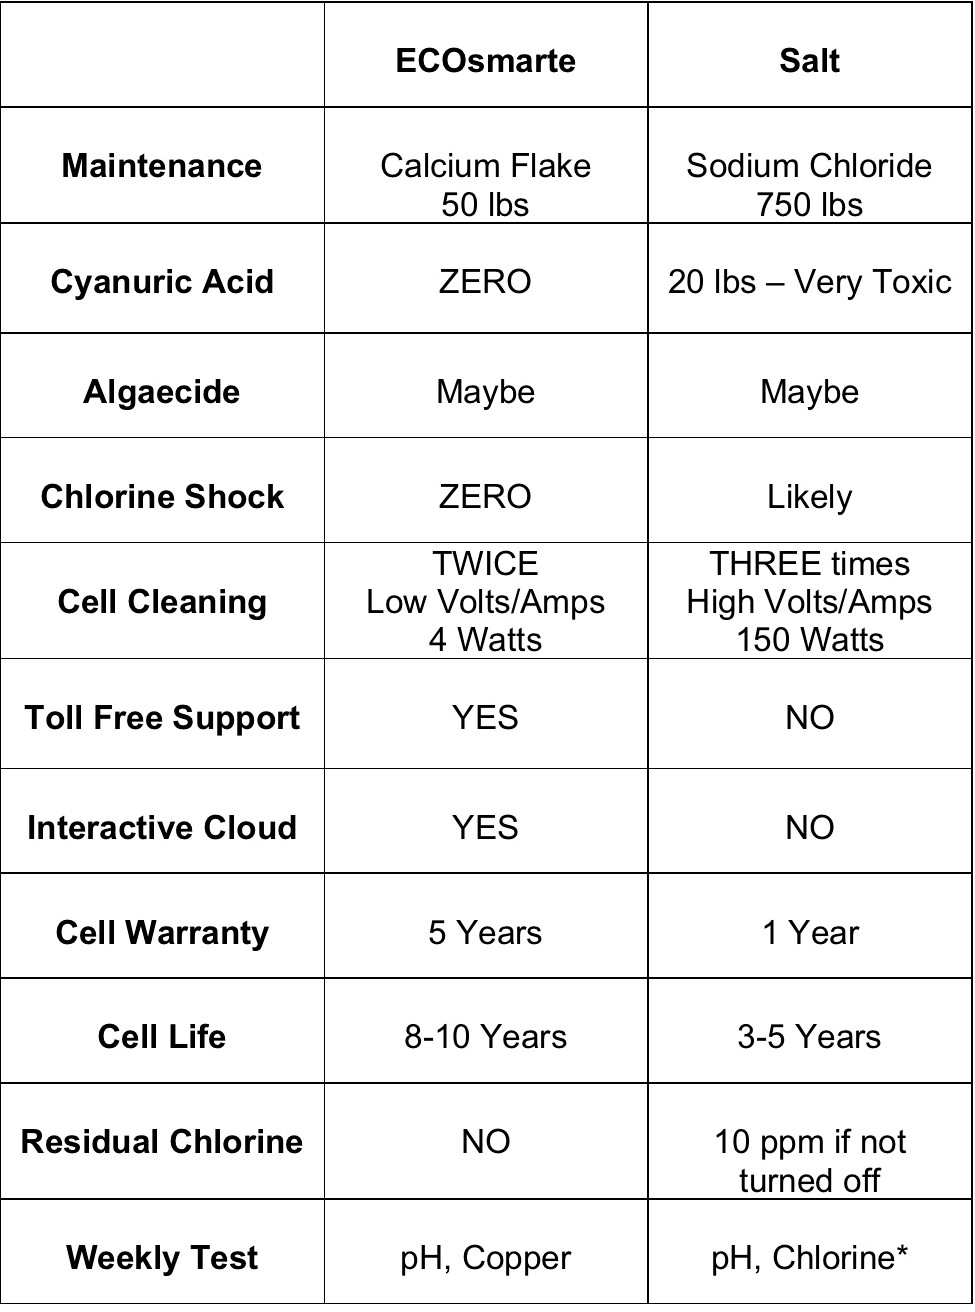 Treatment Comparison